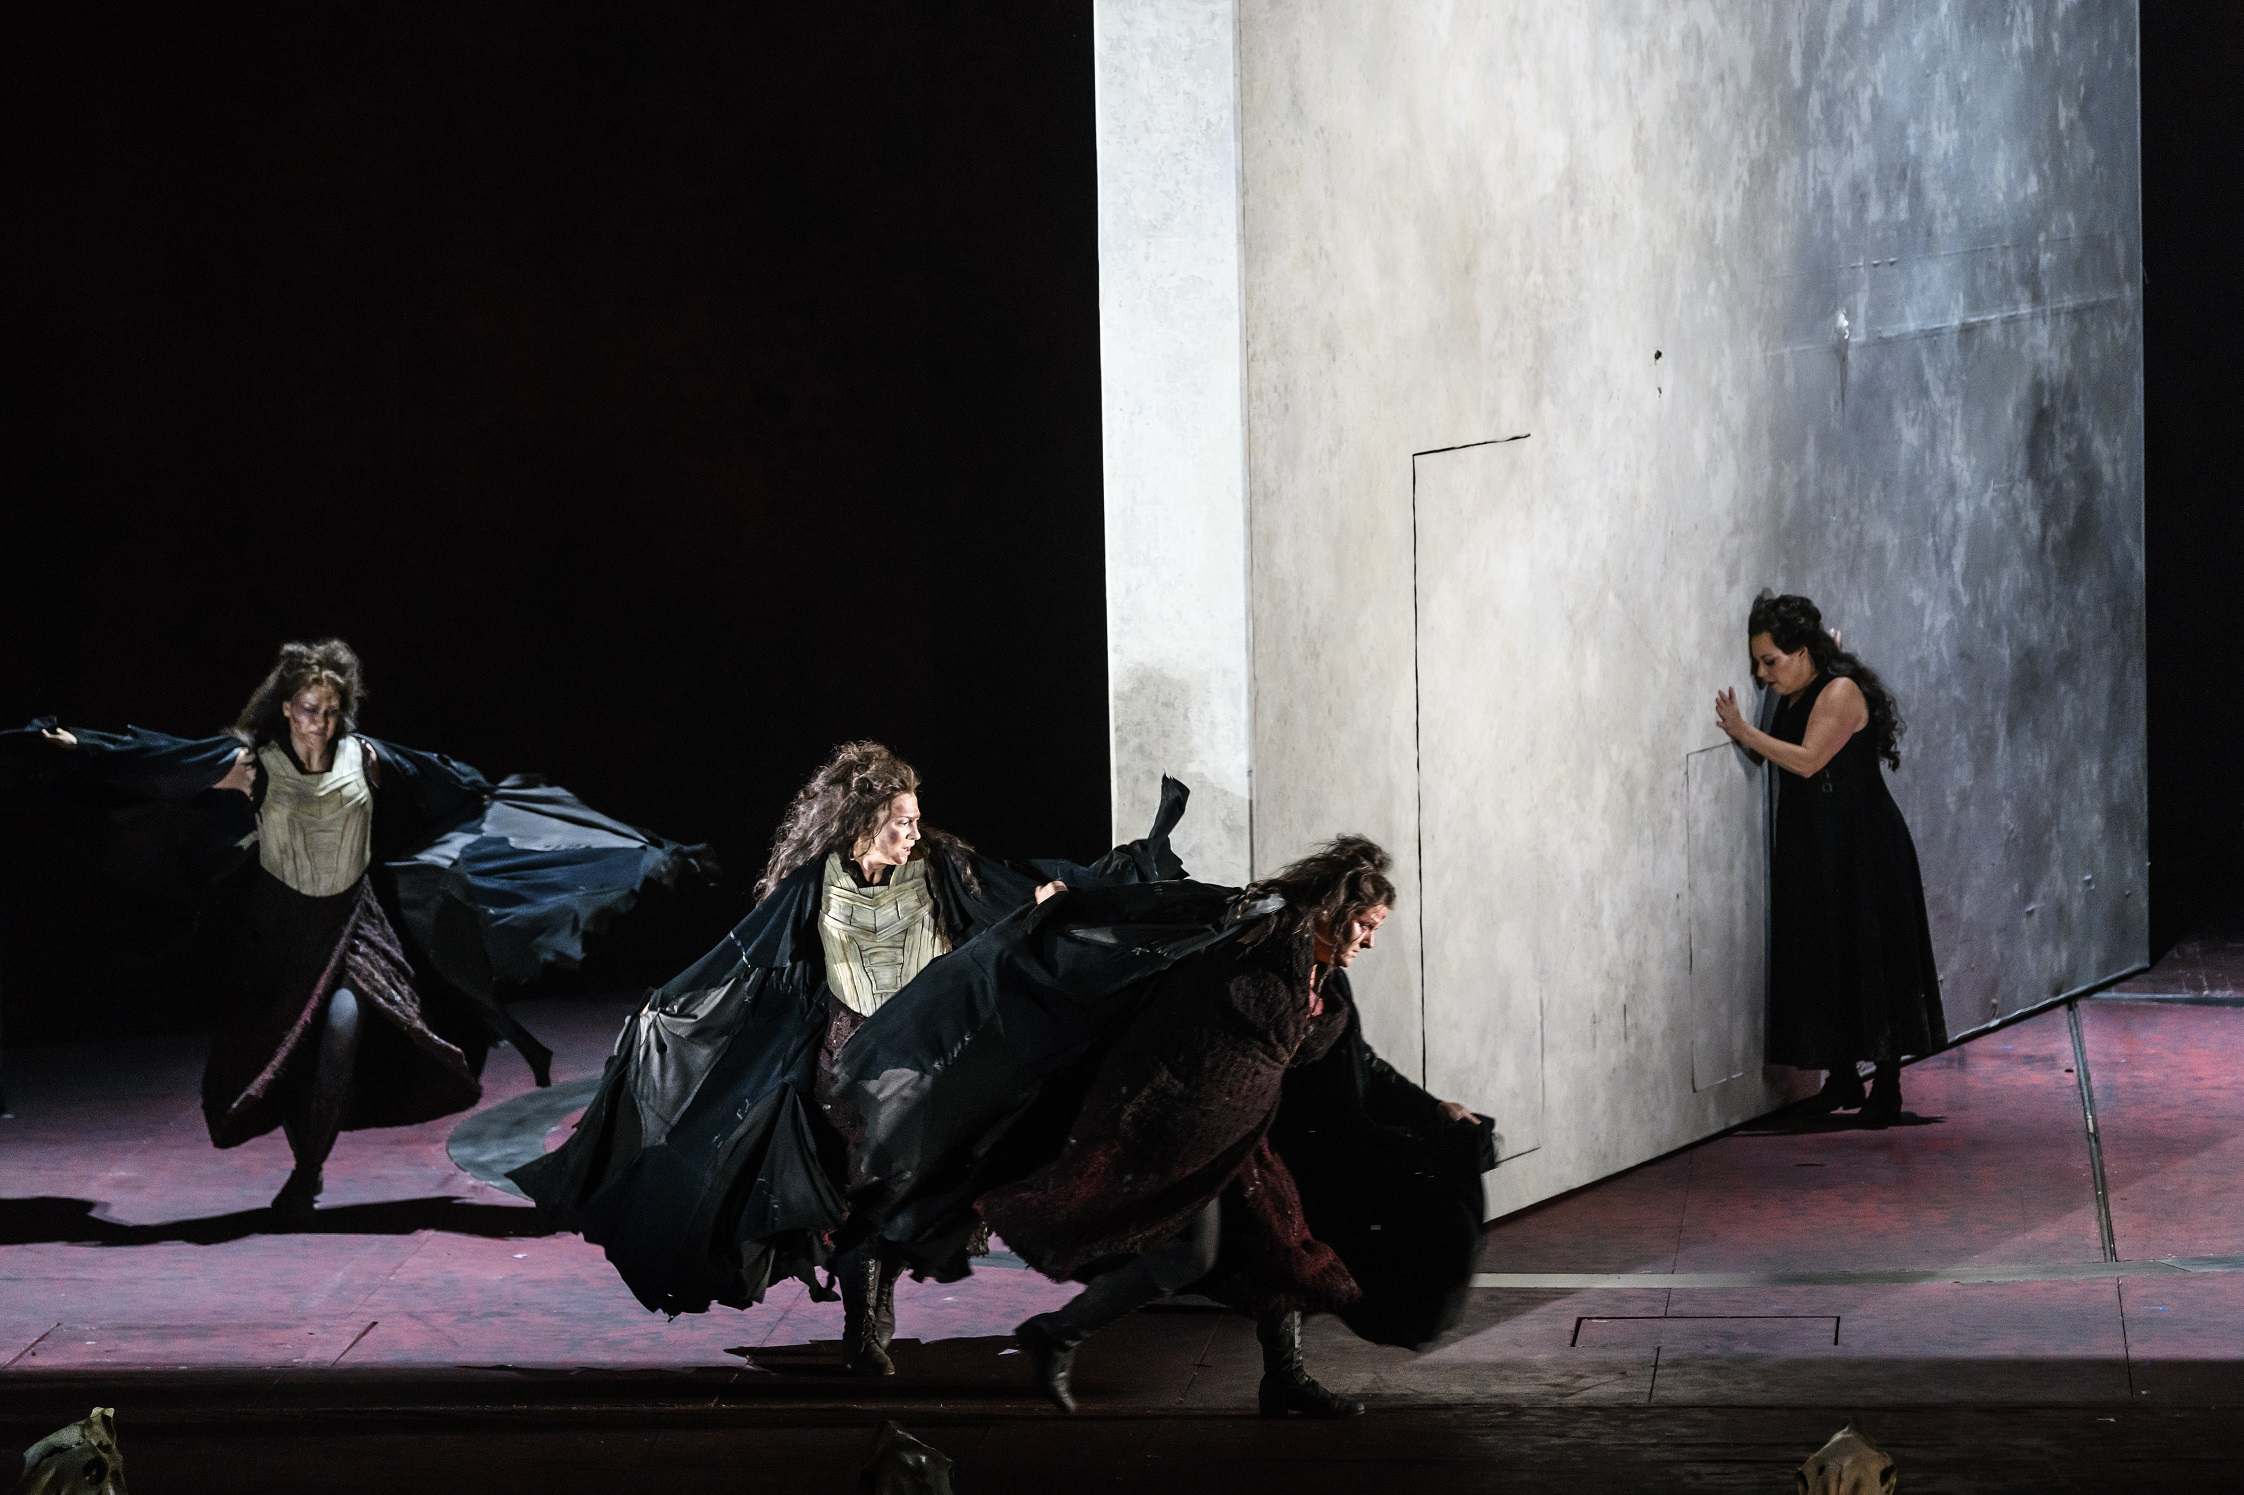 Valkyries and John Lundgren as Wotan at The Royal Opera